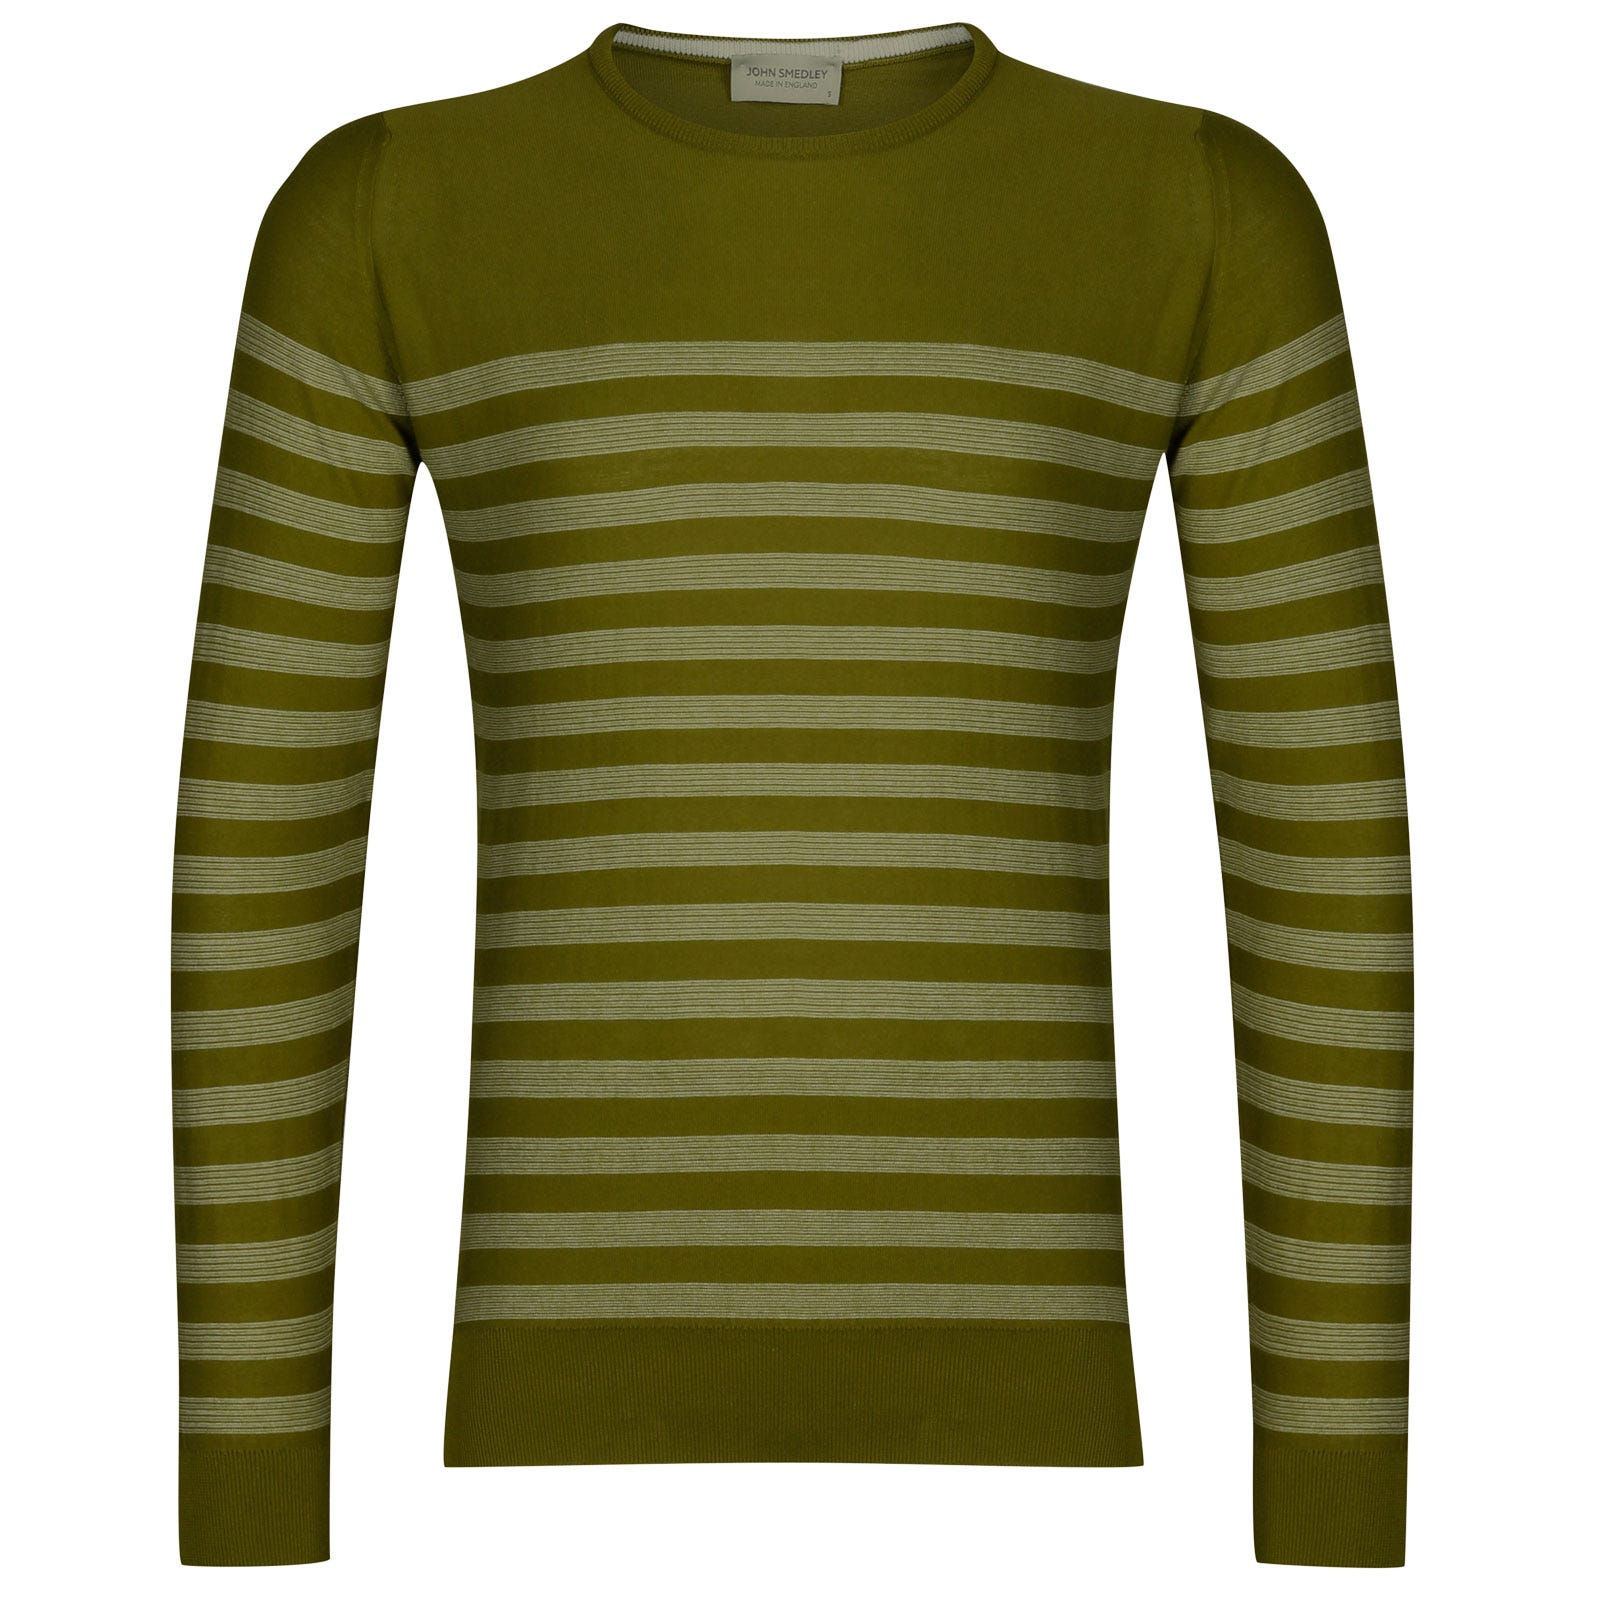 John Smedley rubra Sea Island Cotton Sweater in Lumsdale